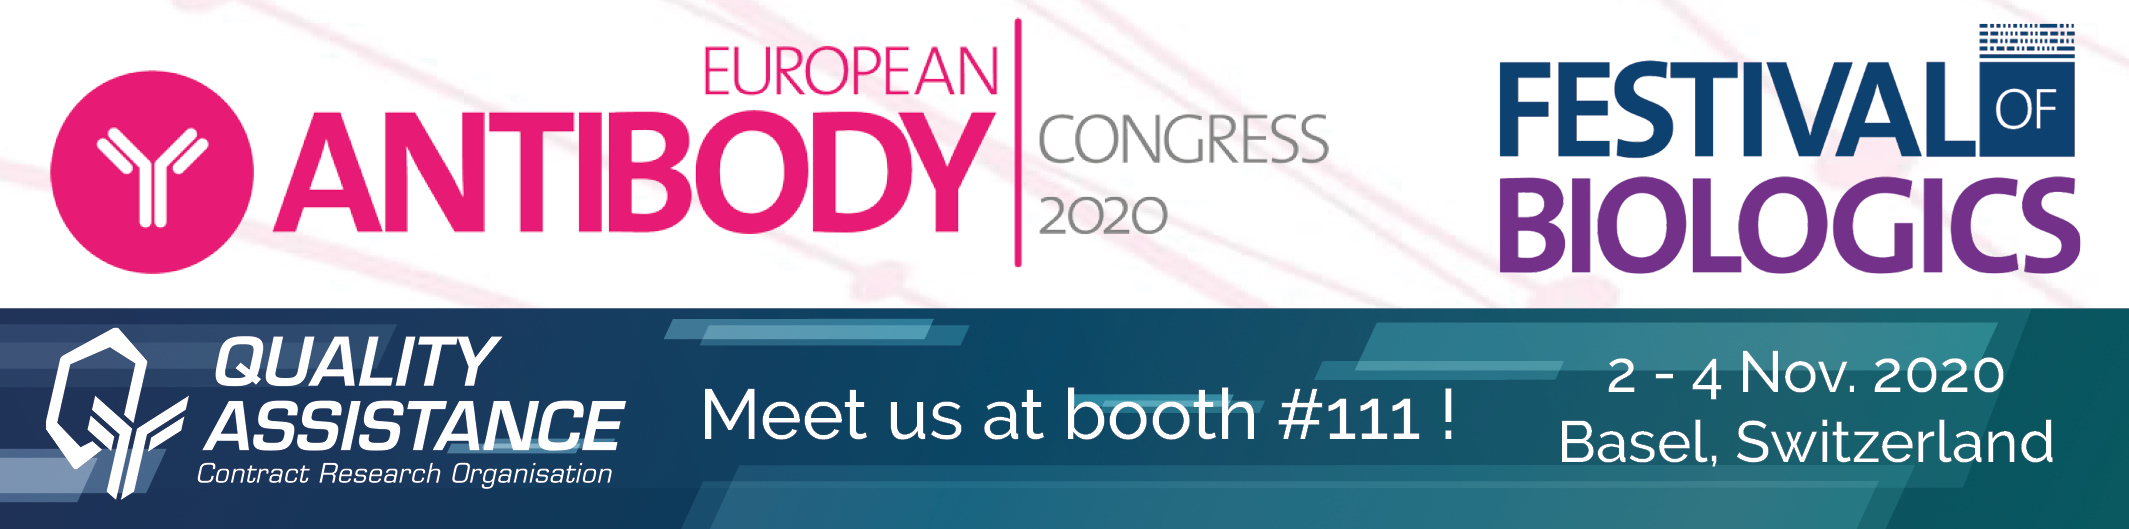 european antibody congress festival of biologics banner